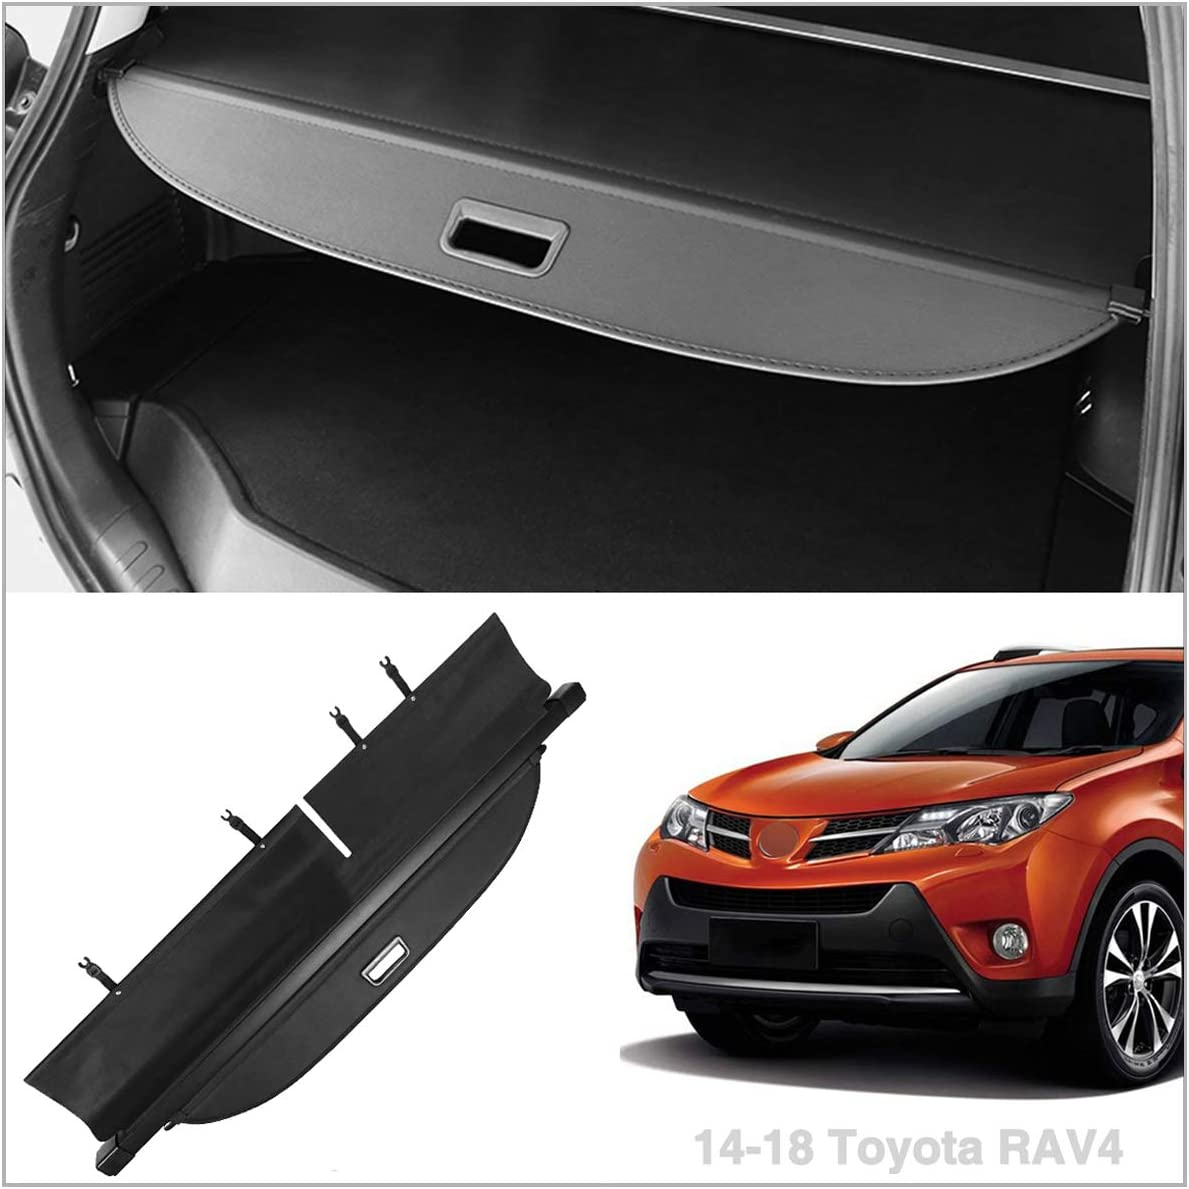 US Retractable Trunk Cargo Cover Shade Fit Toyota RAV4 2014 2015 2016 2017 FM